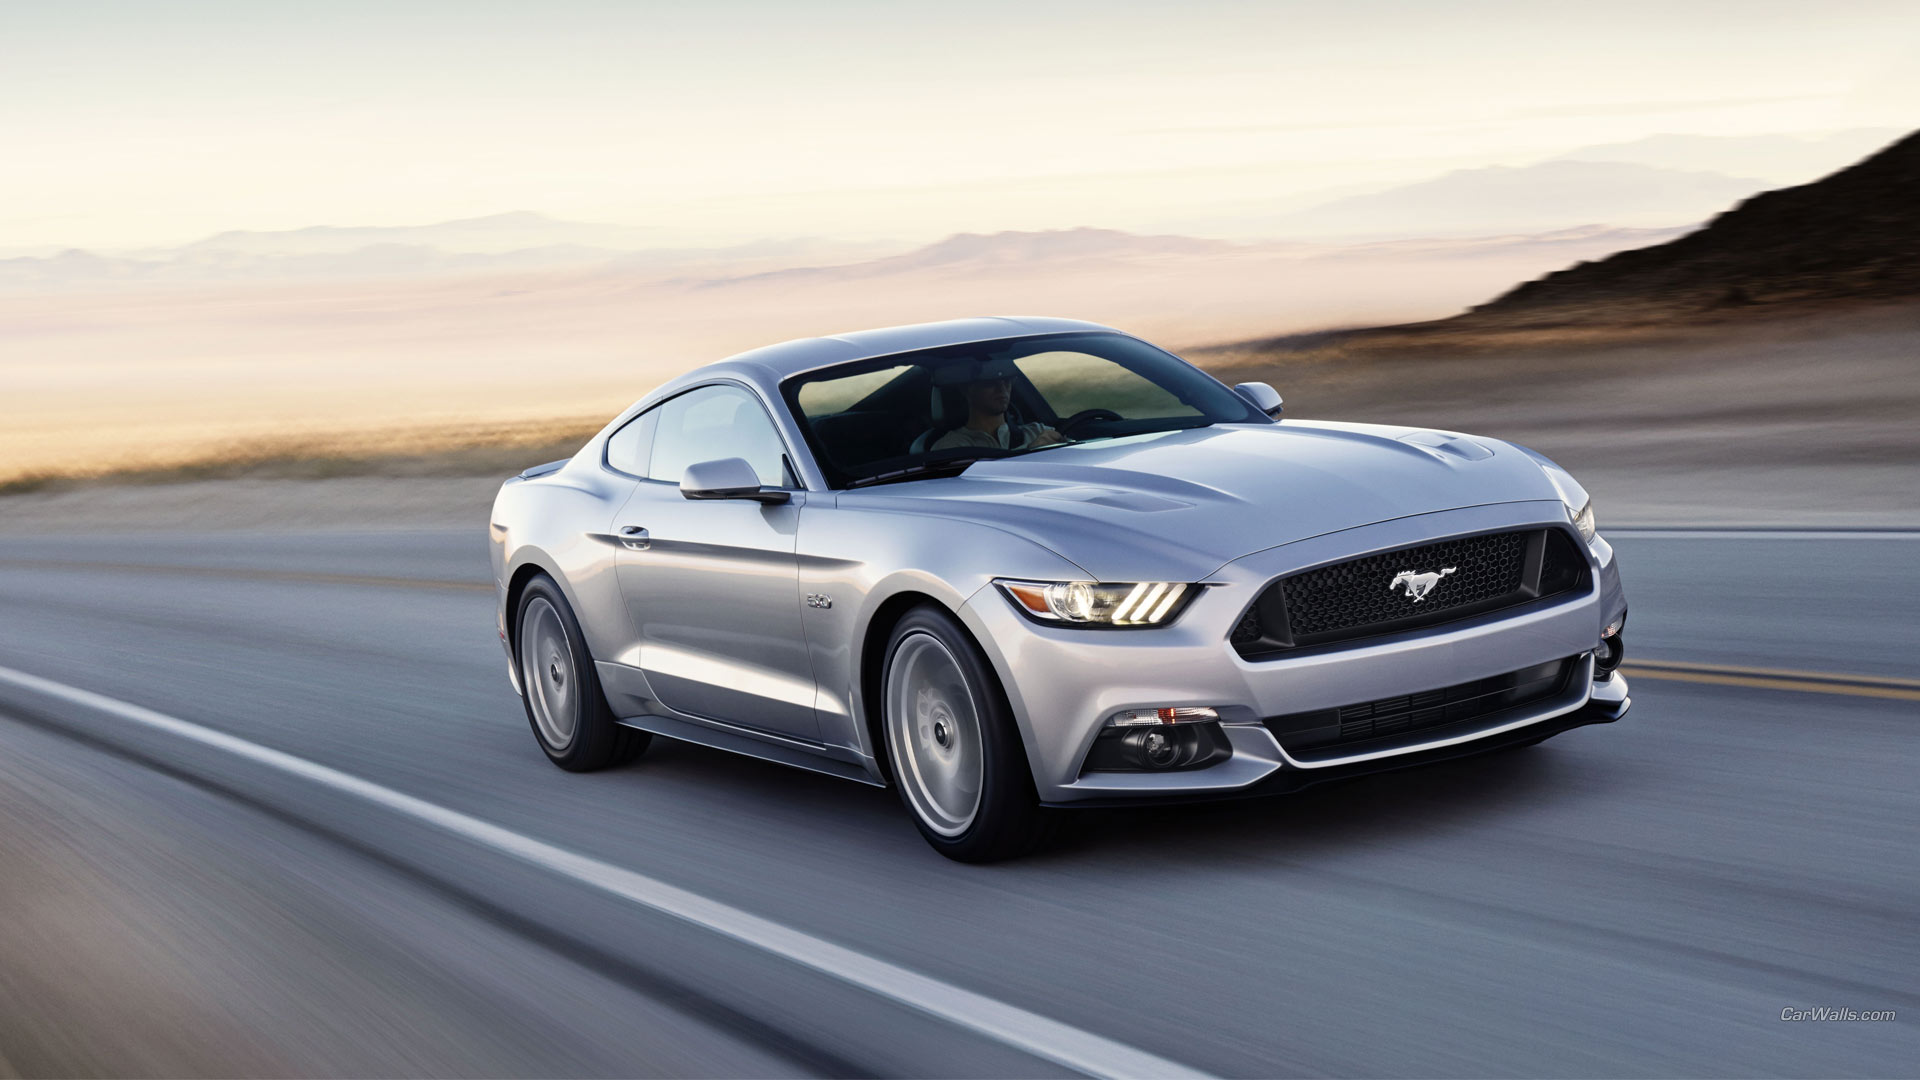 1920x1080 - Ford Mustang GT Wallpapers 24